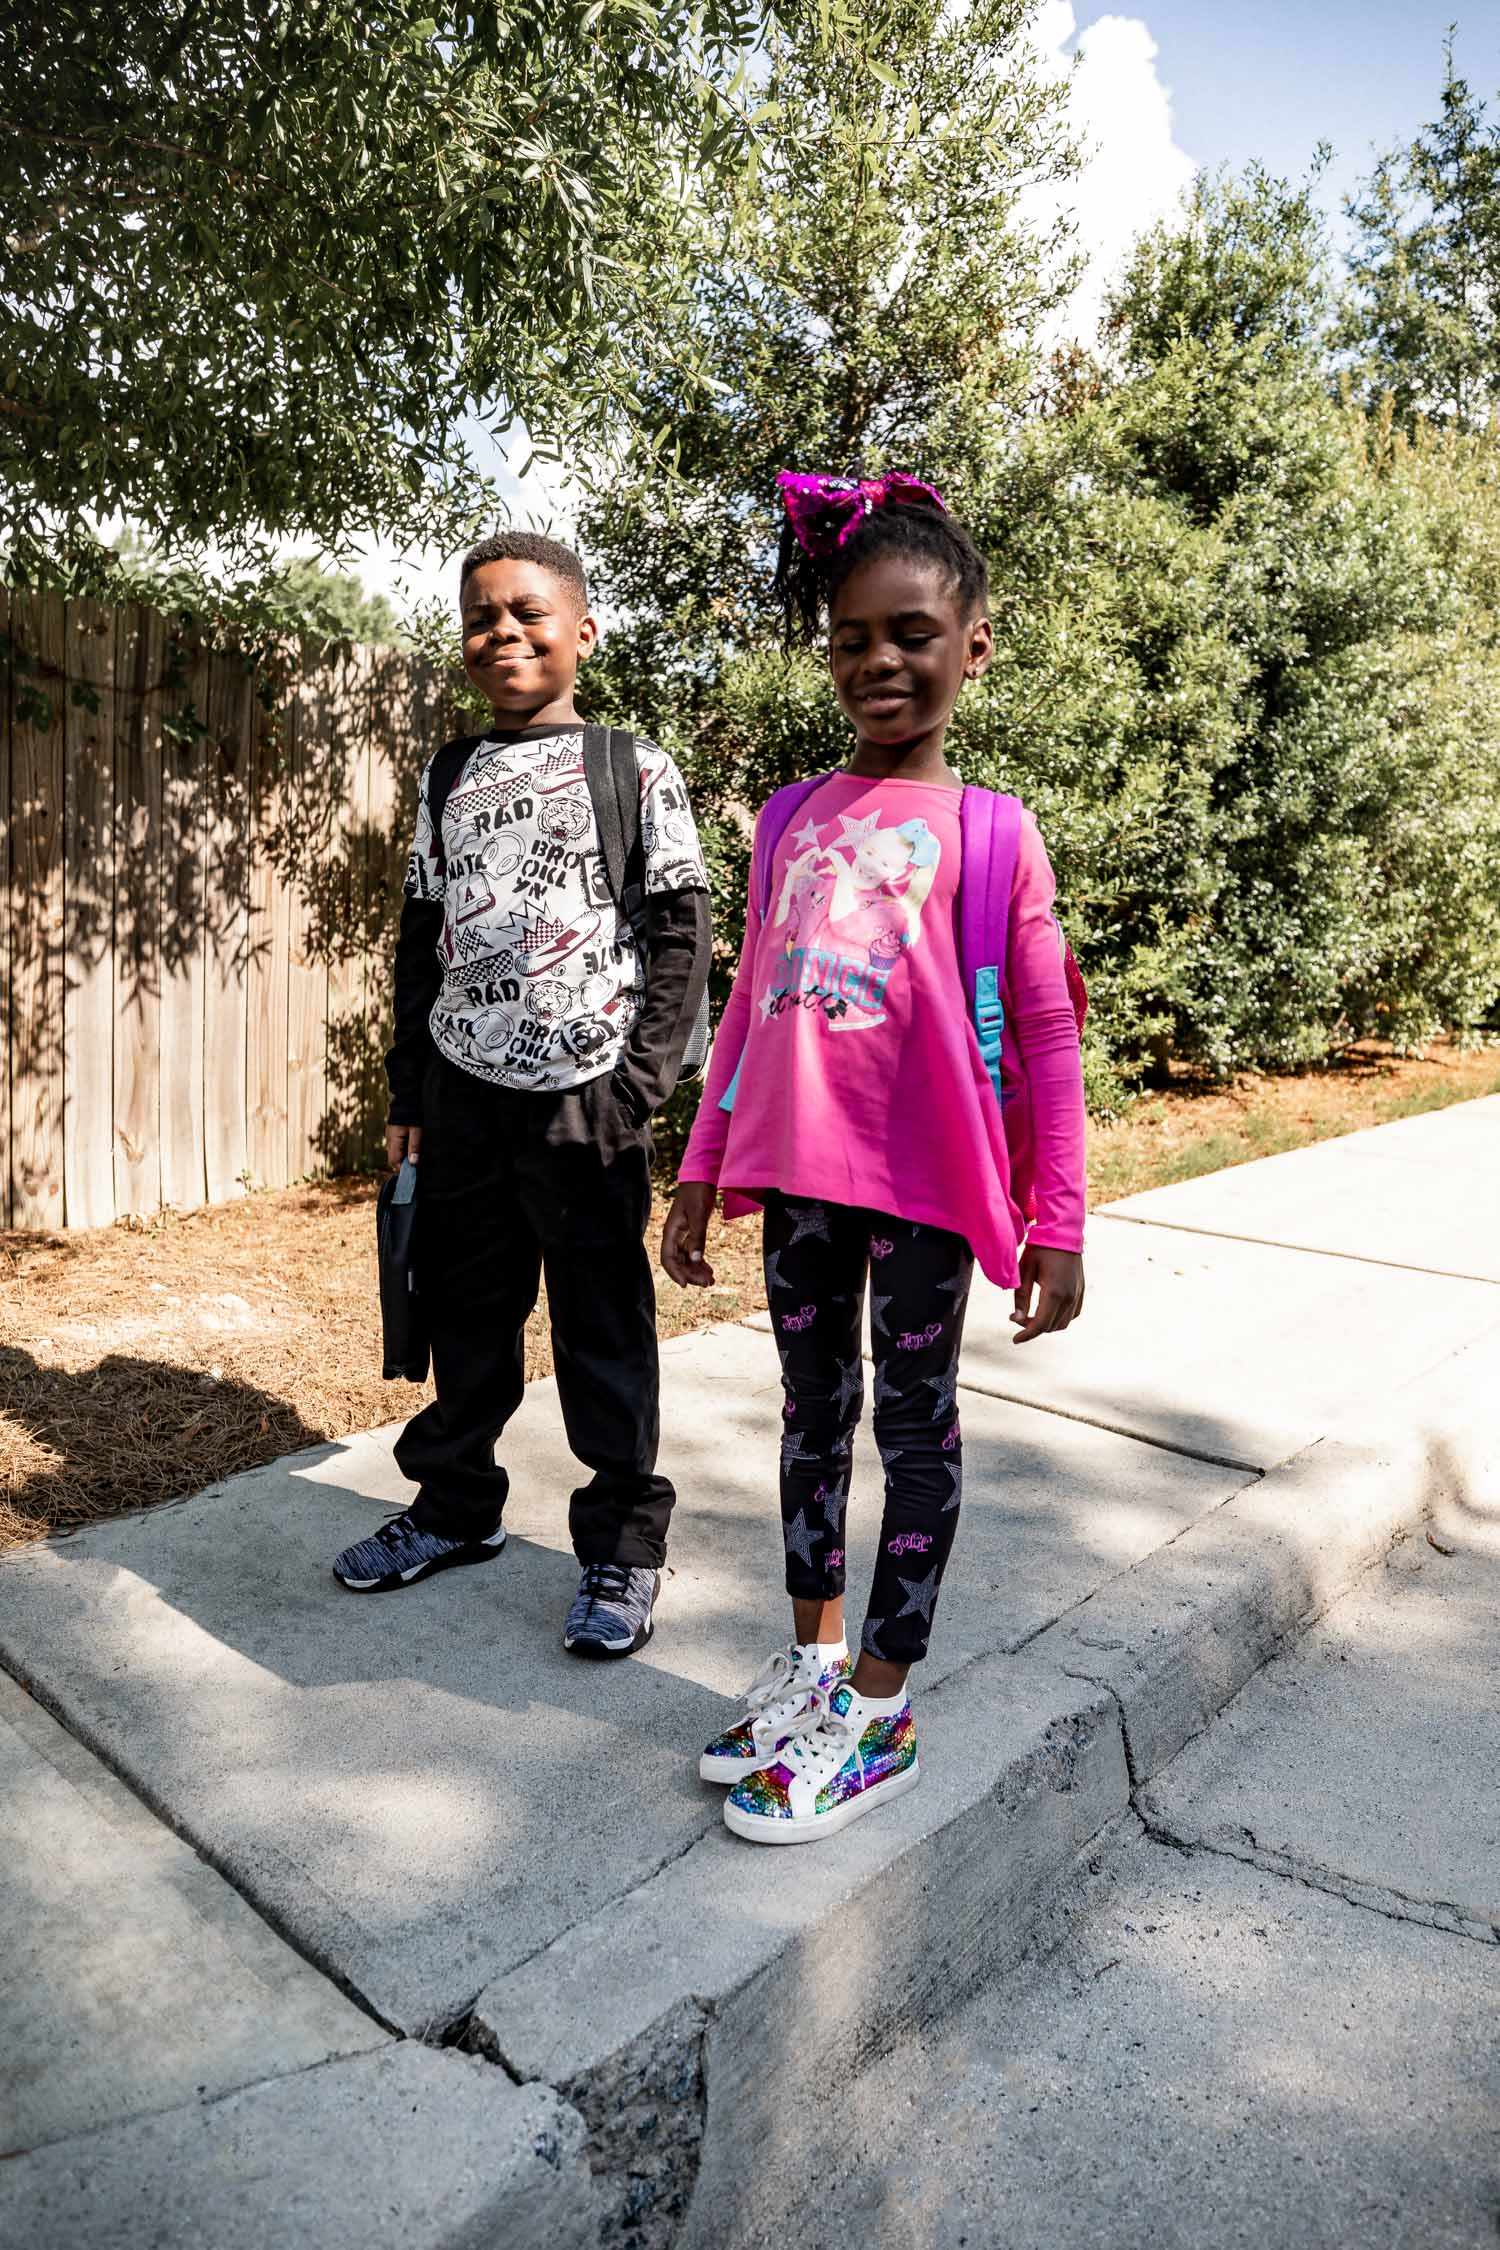 back to school supplies from walmart, Atlanta fashion and lifestyle blogger monica awe-etuk's kids getting ready for bts with walmart, jojo siwa outfit and kids supplies at walmart, back to schools supplies from walmart, bts, back to school supplies